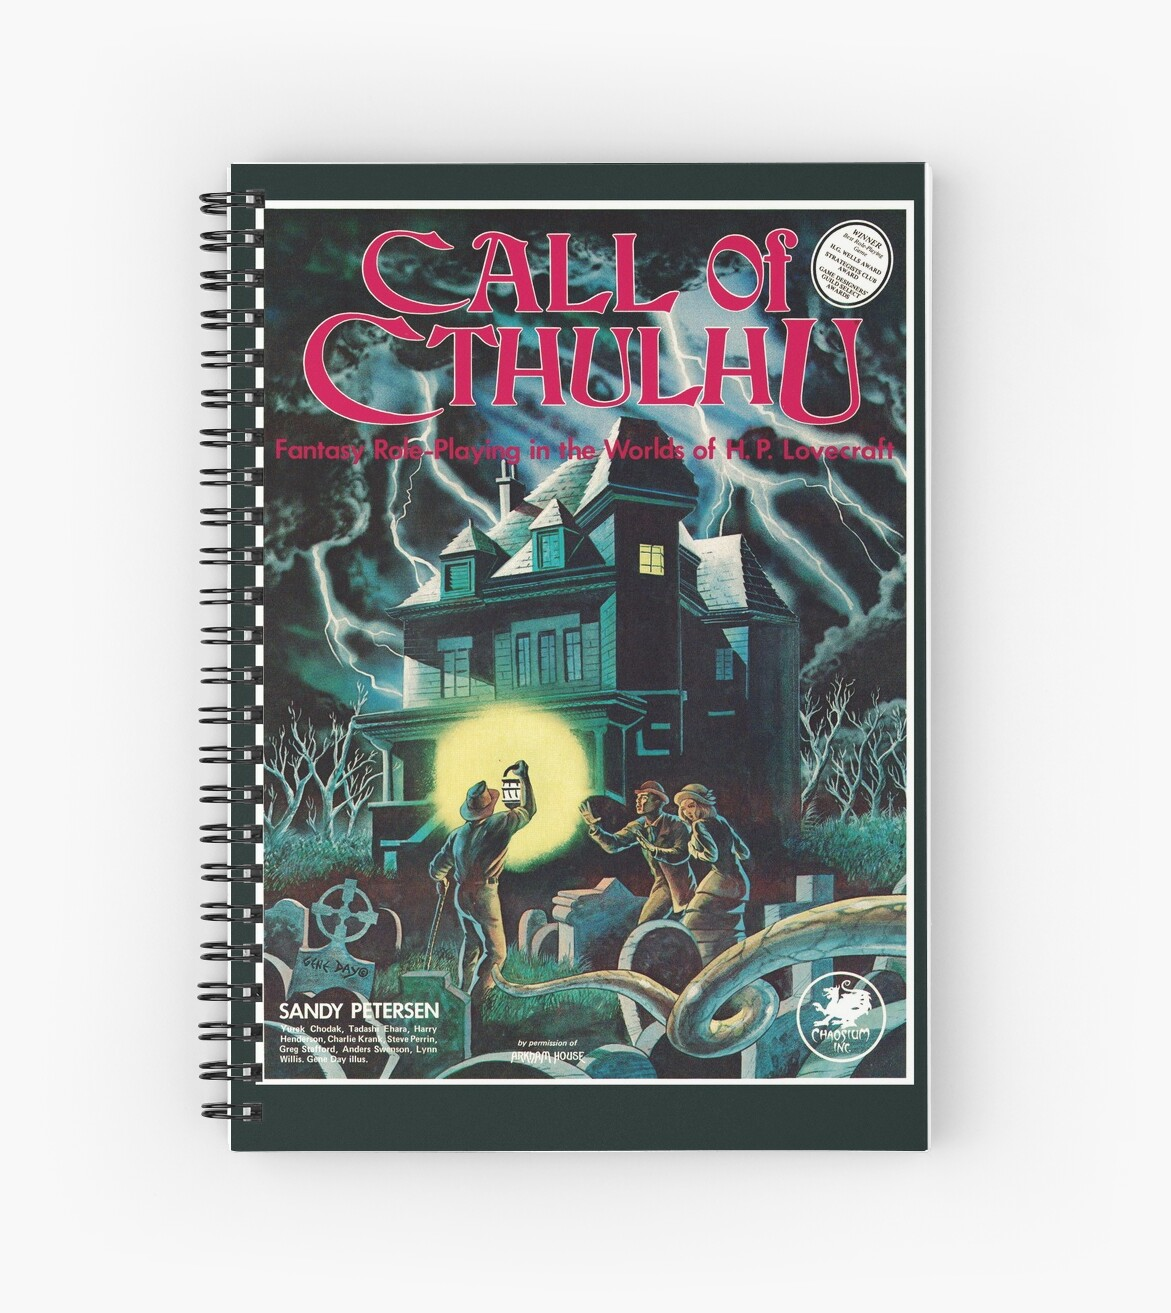 Call of Cthulhu 1st Edition Cover by Chaosium